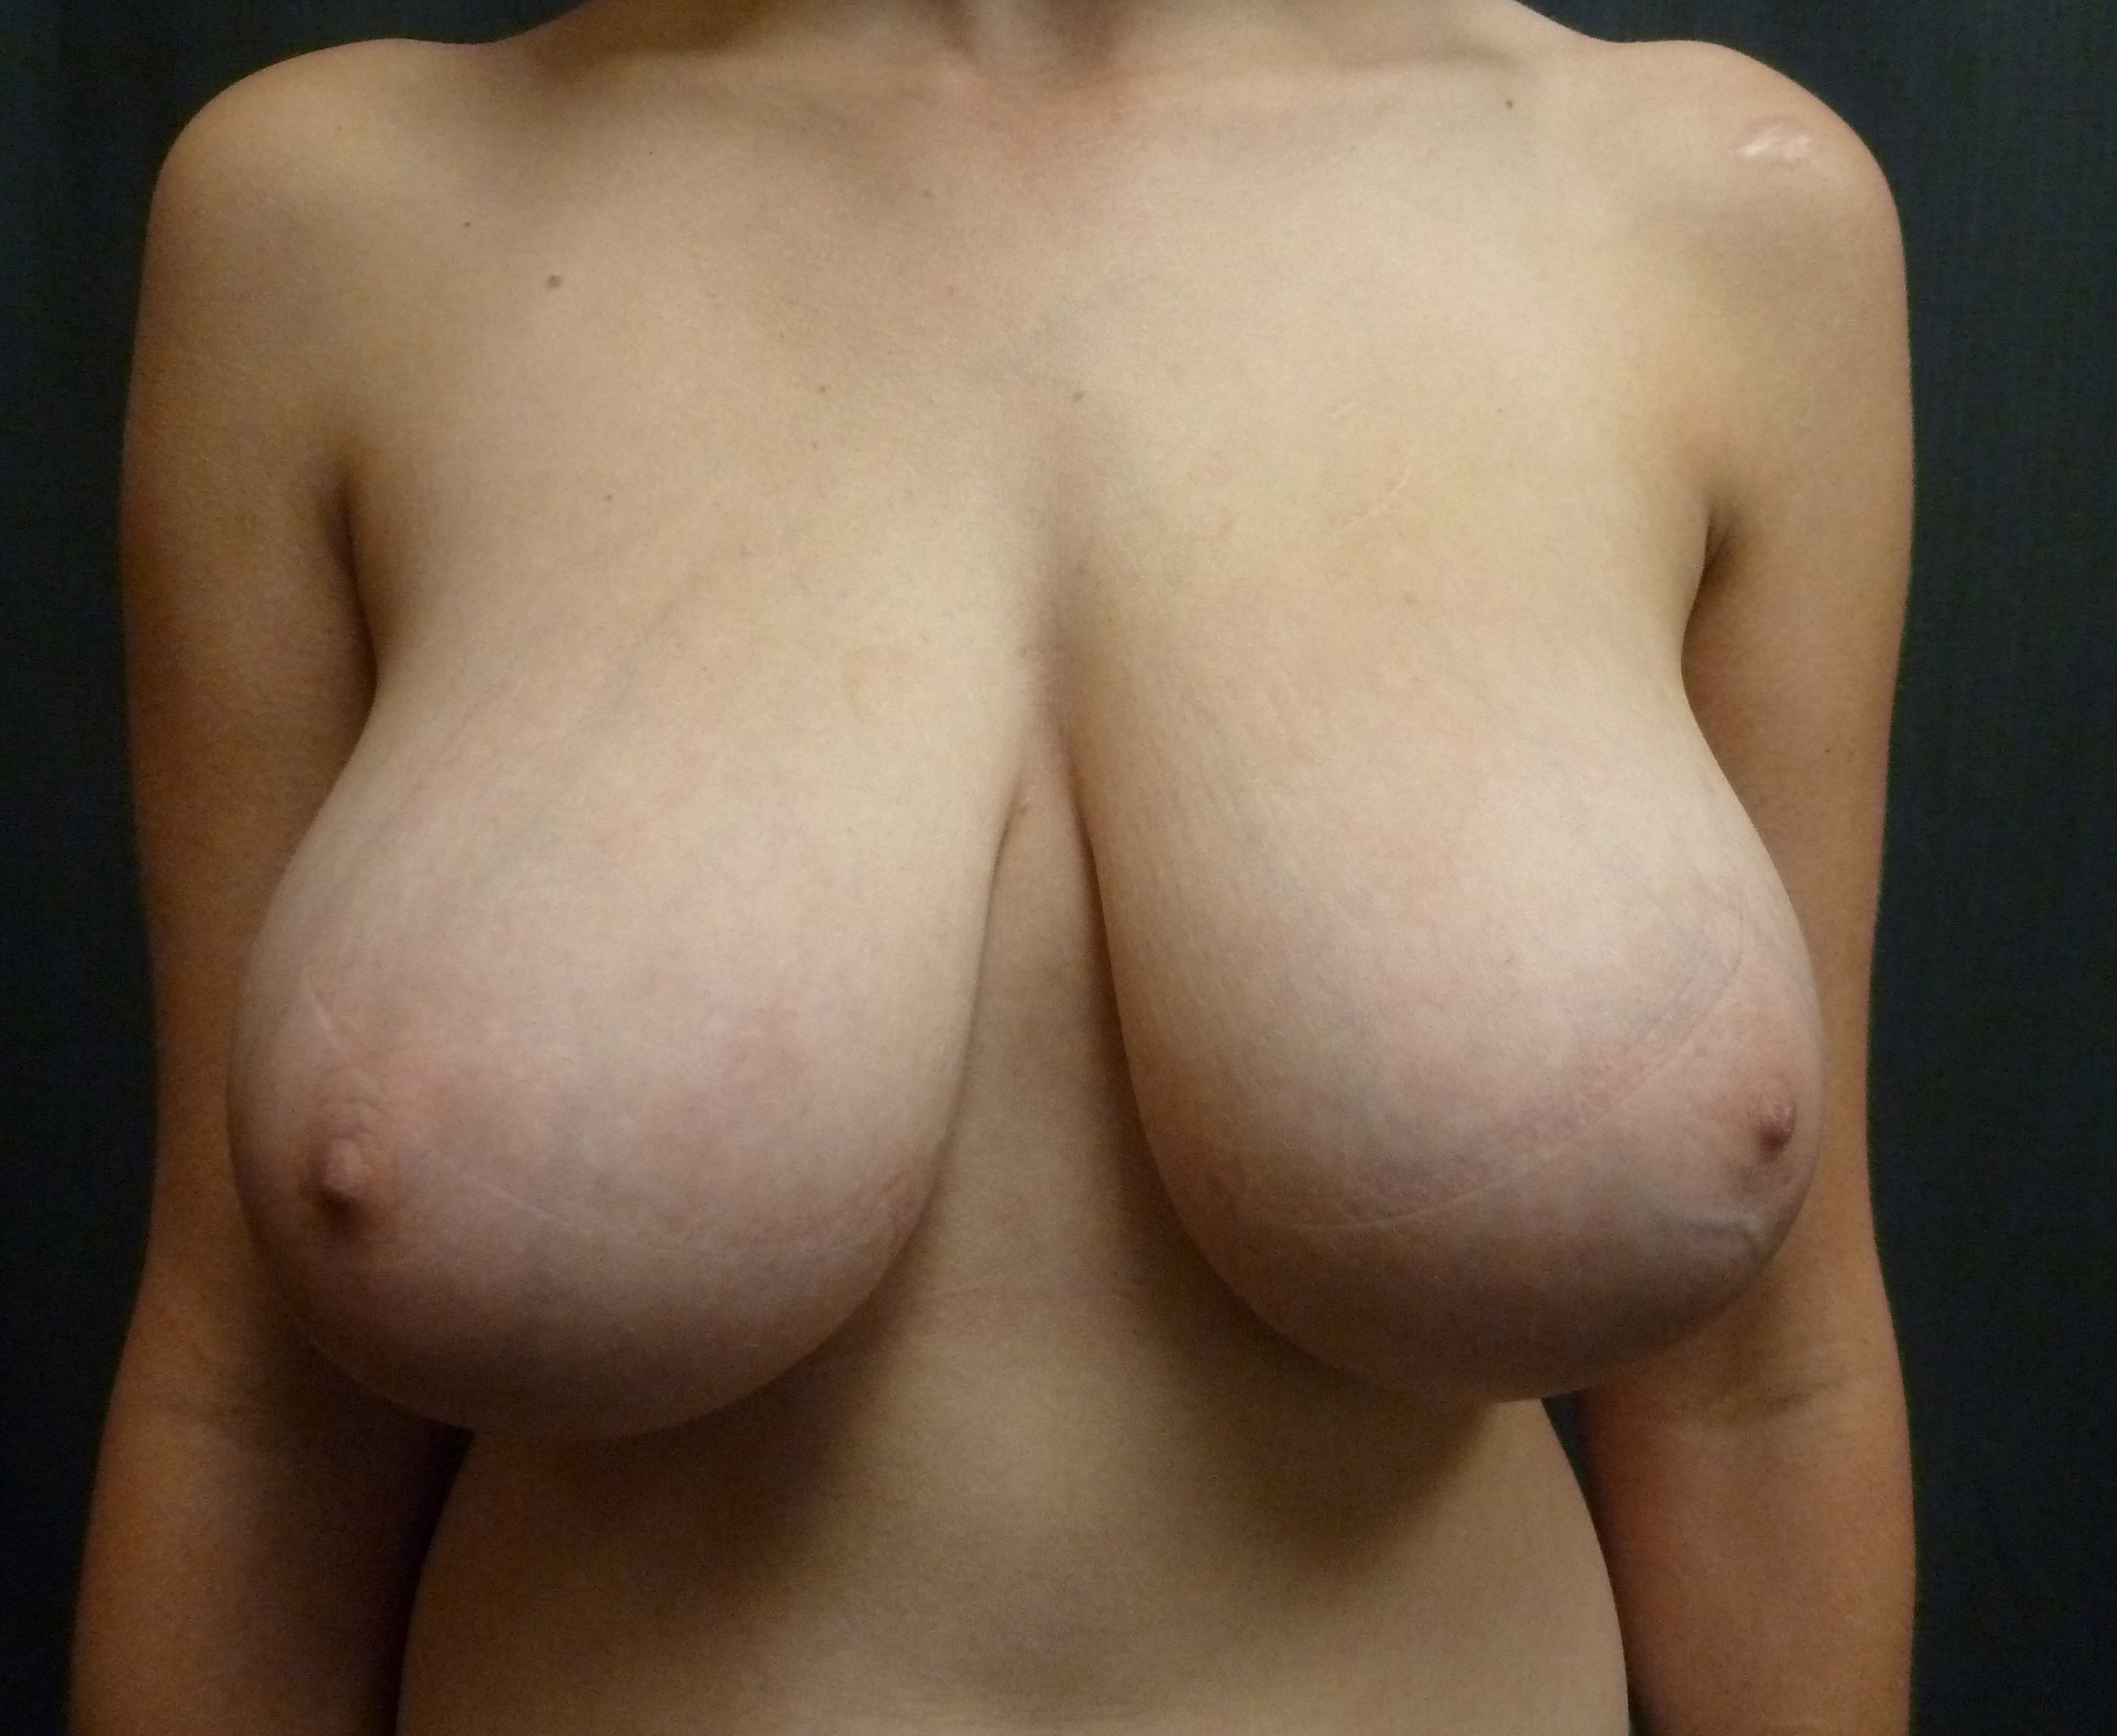 Breast Reduction Before & After Pictures - RealSelf